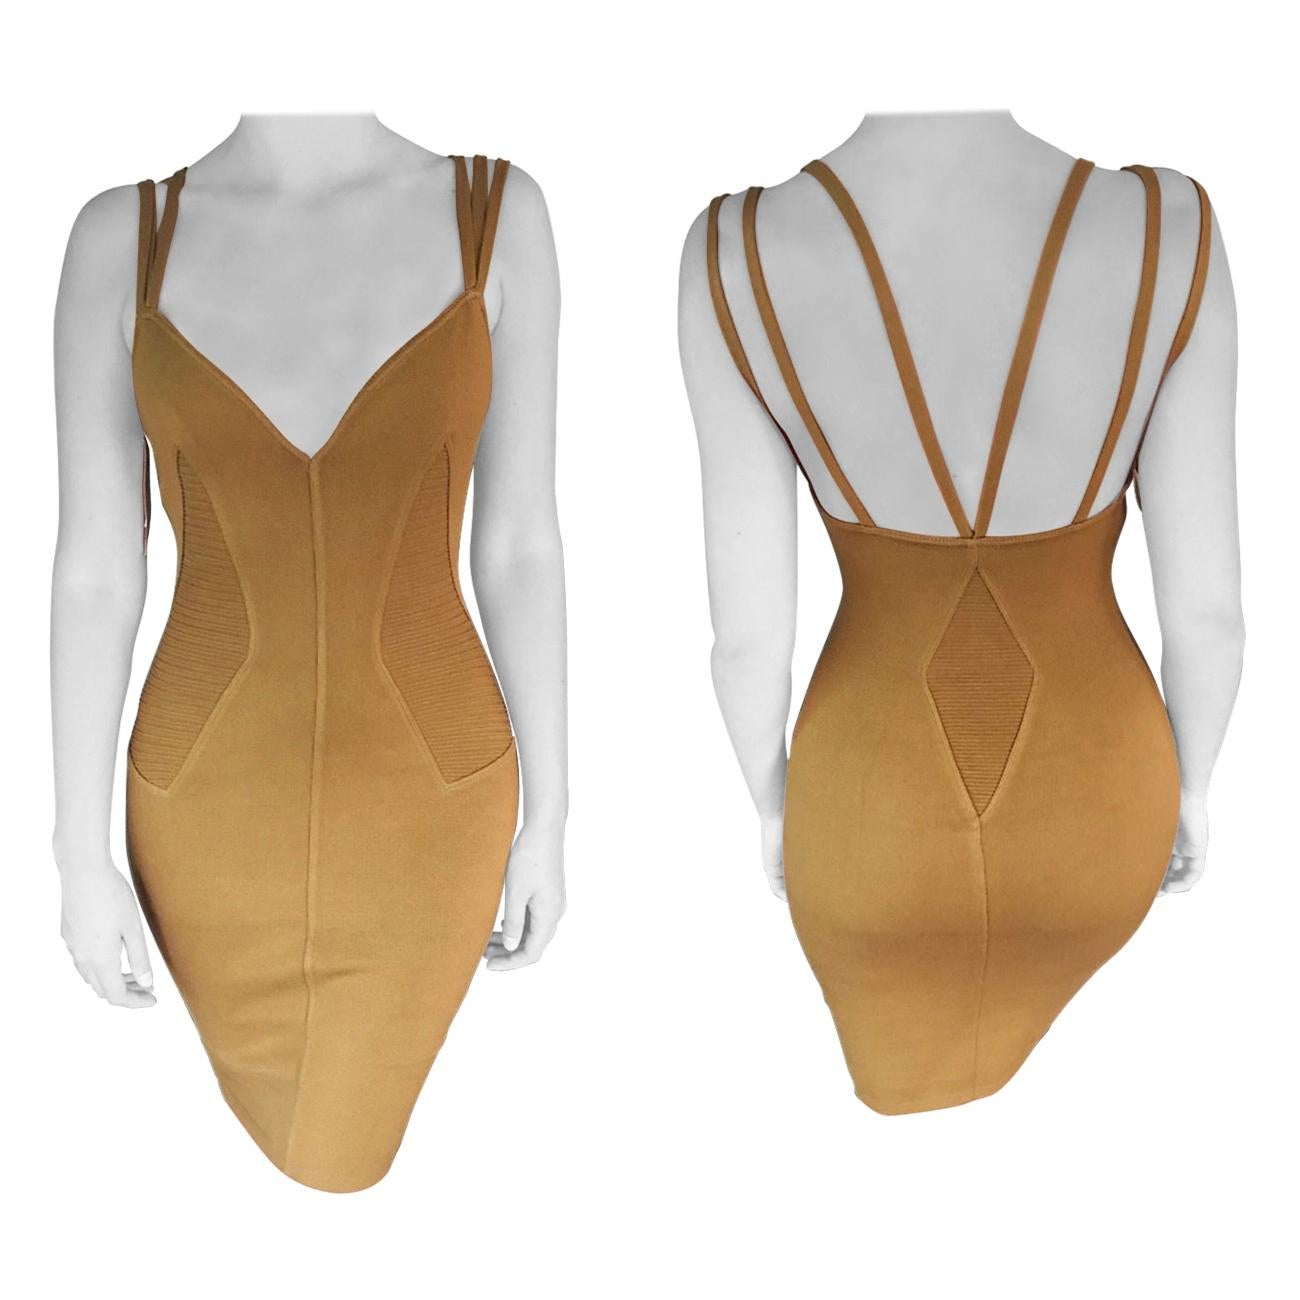 Azzedine Alaia S/S 1990 Vintage Fitted Bodycon Dress